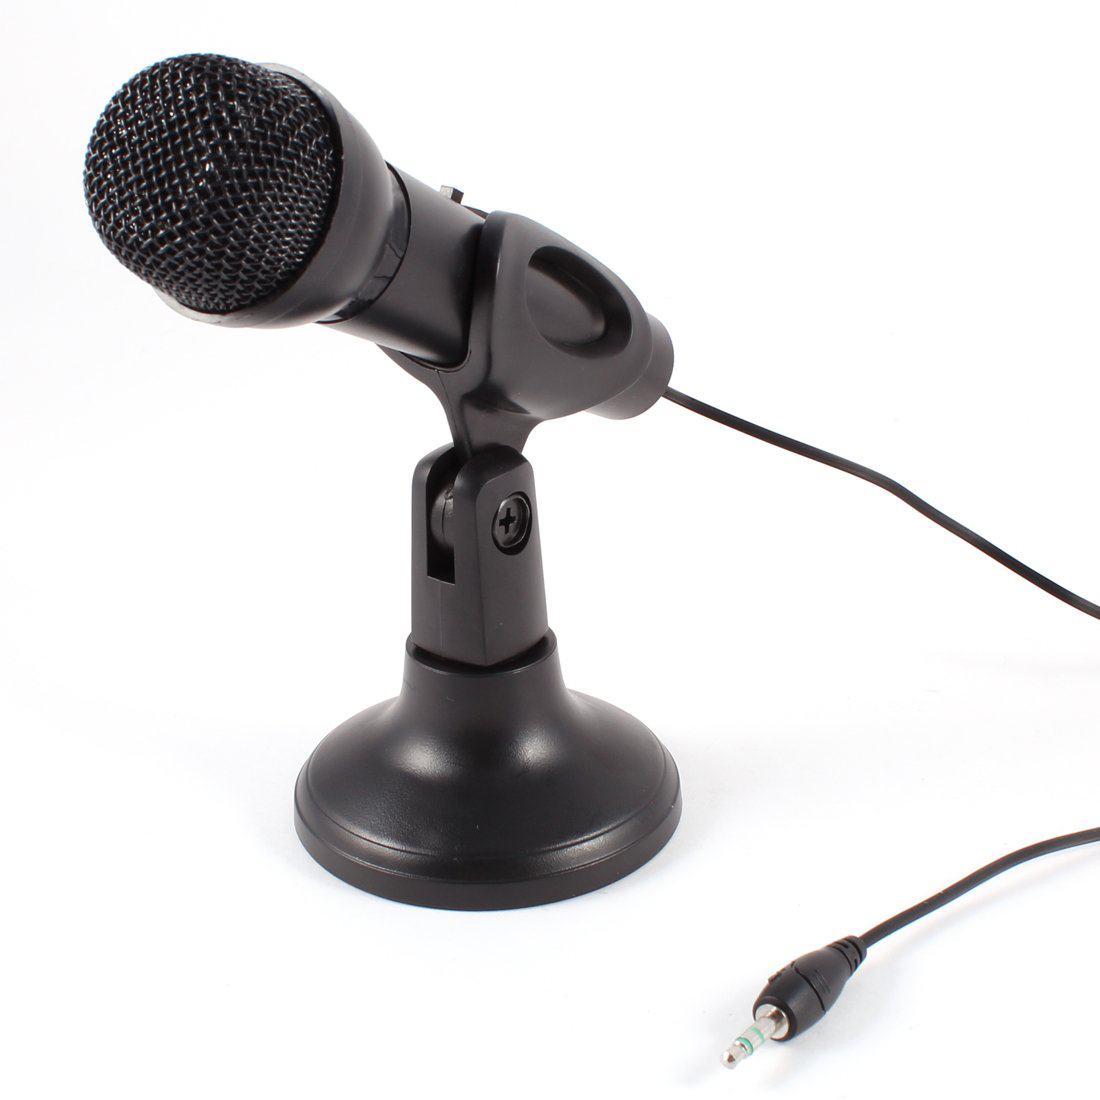 Tsv usb omnidirectional microphone led mic chat studio for pc.